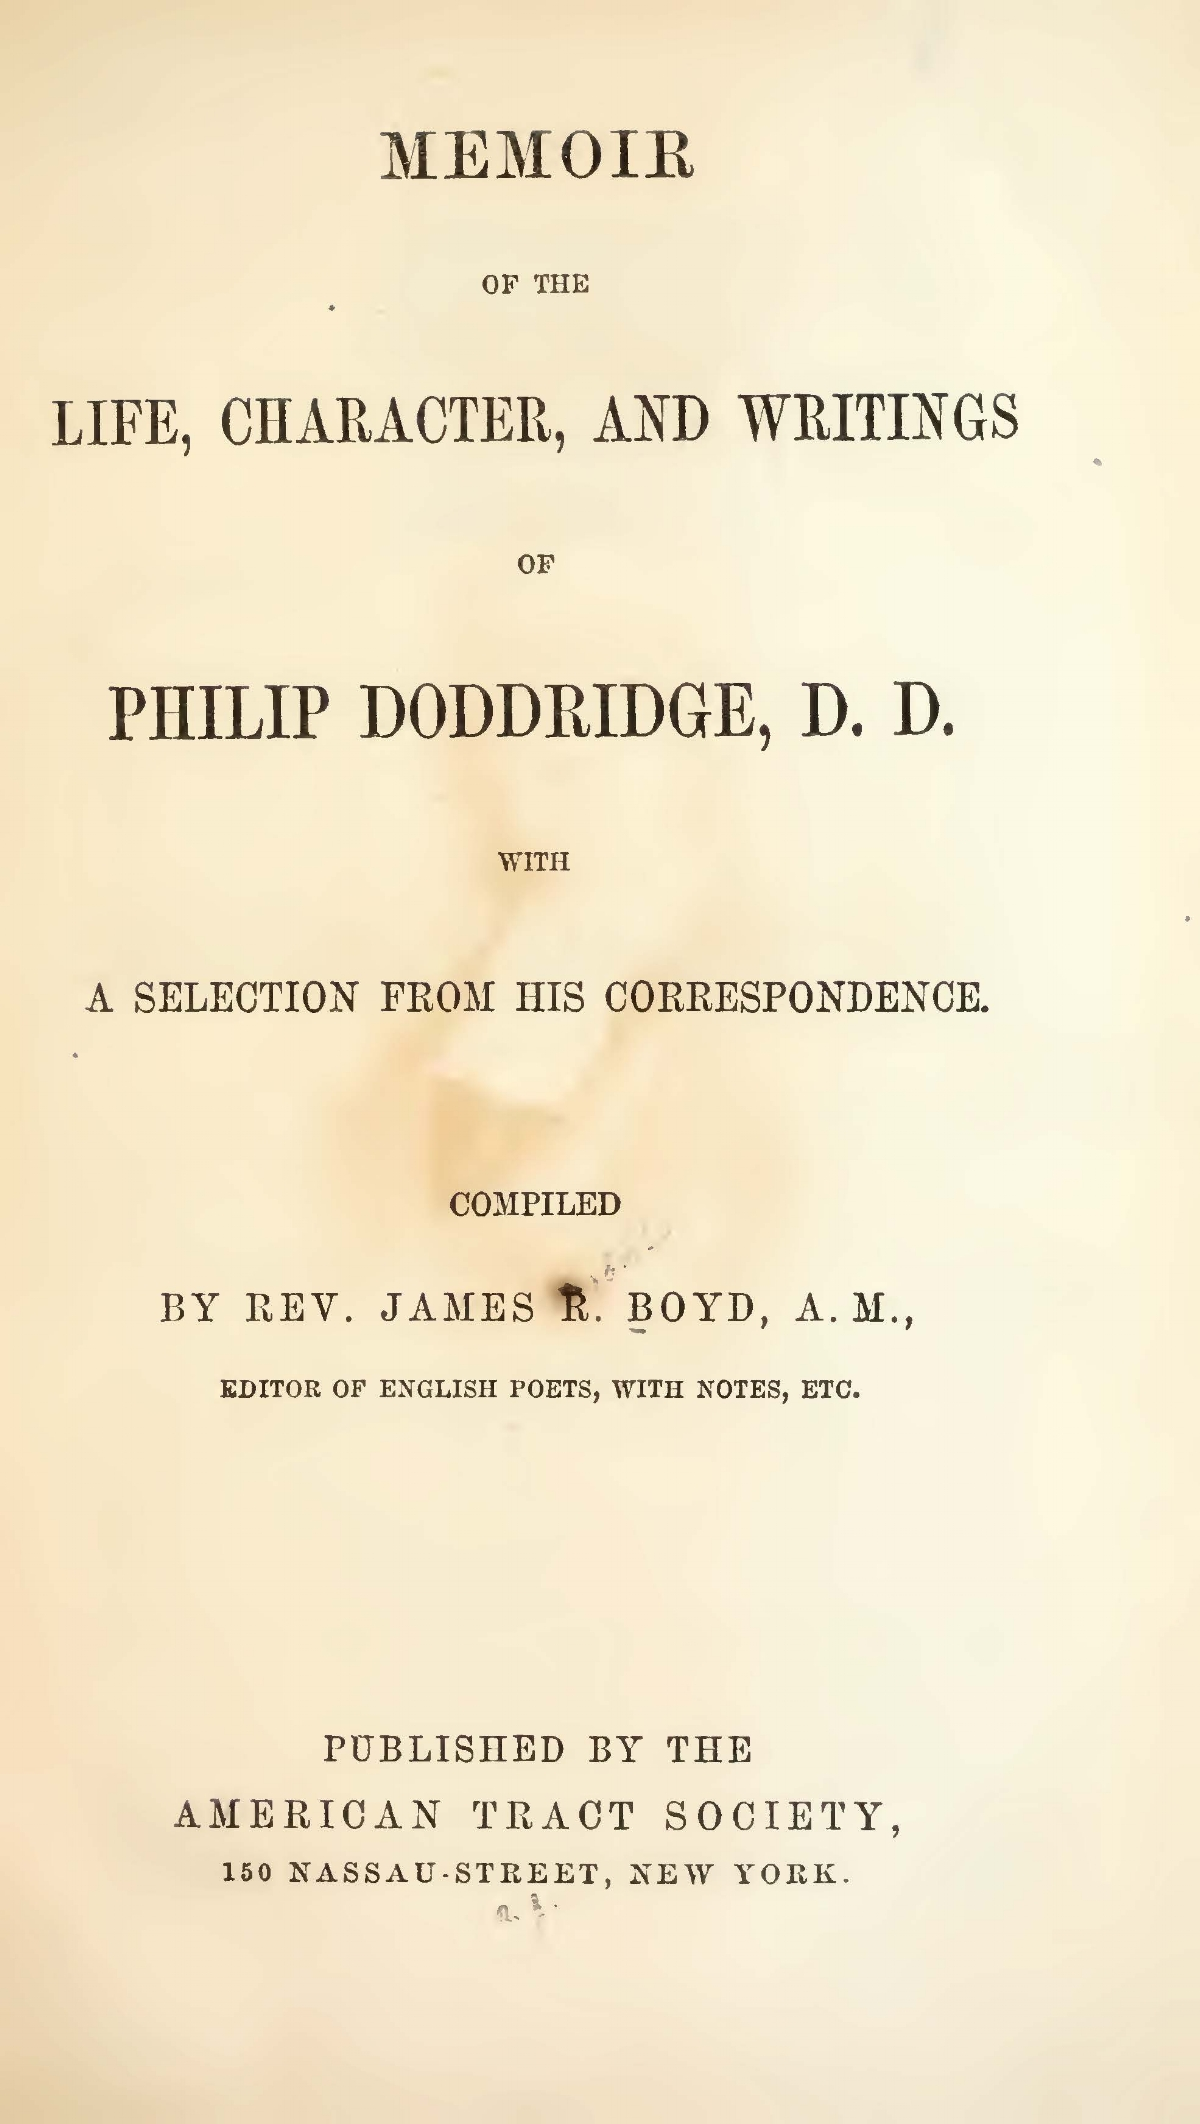 Boyd, James Robert, Memoir of the Life, Character, and Writings of Philip Doddridge, D.D. Title Page.jpg